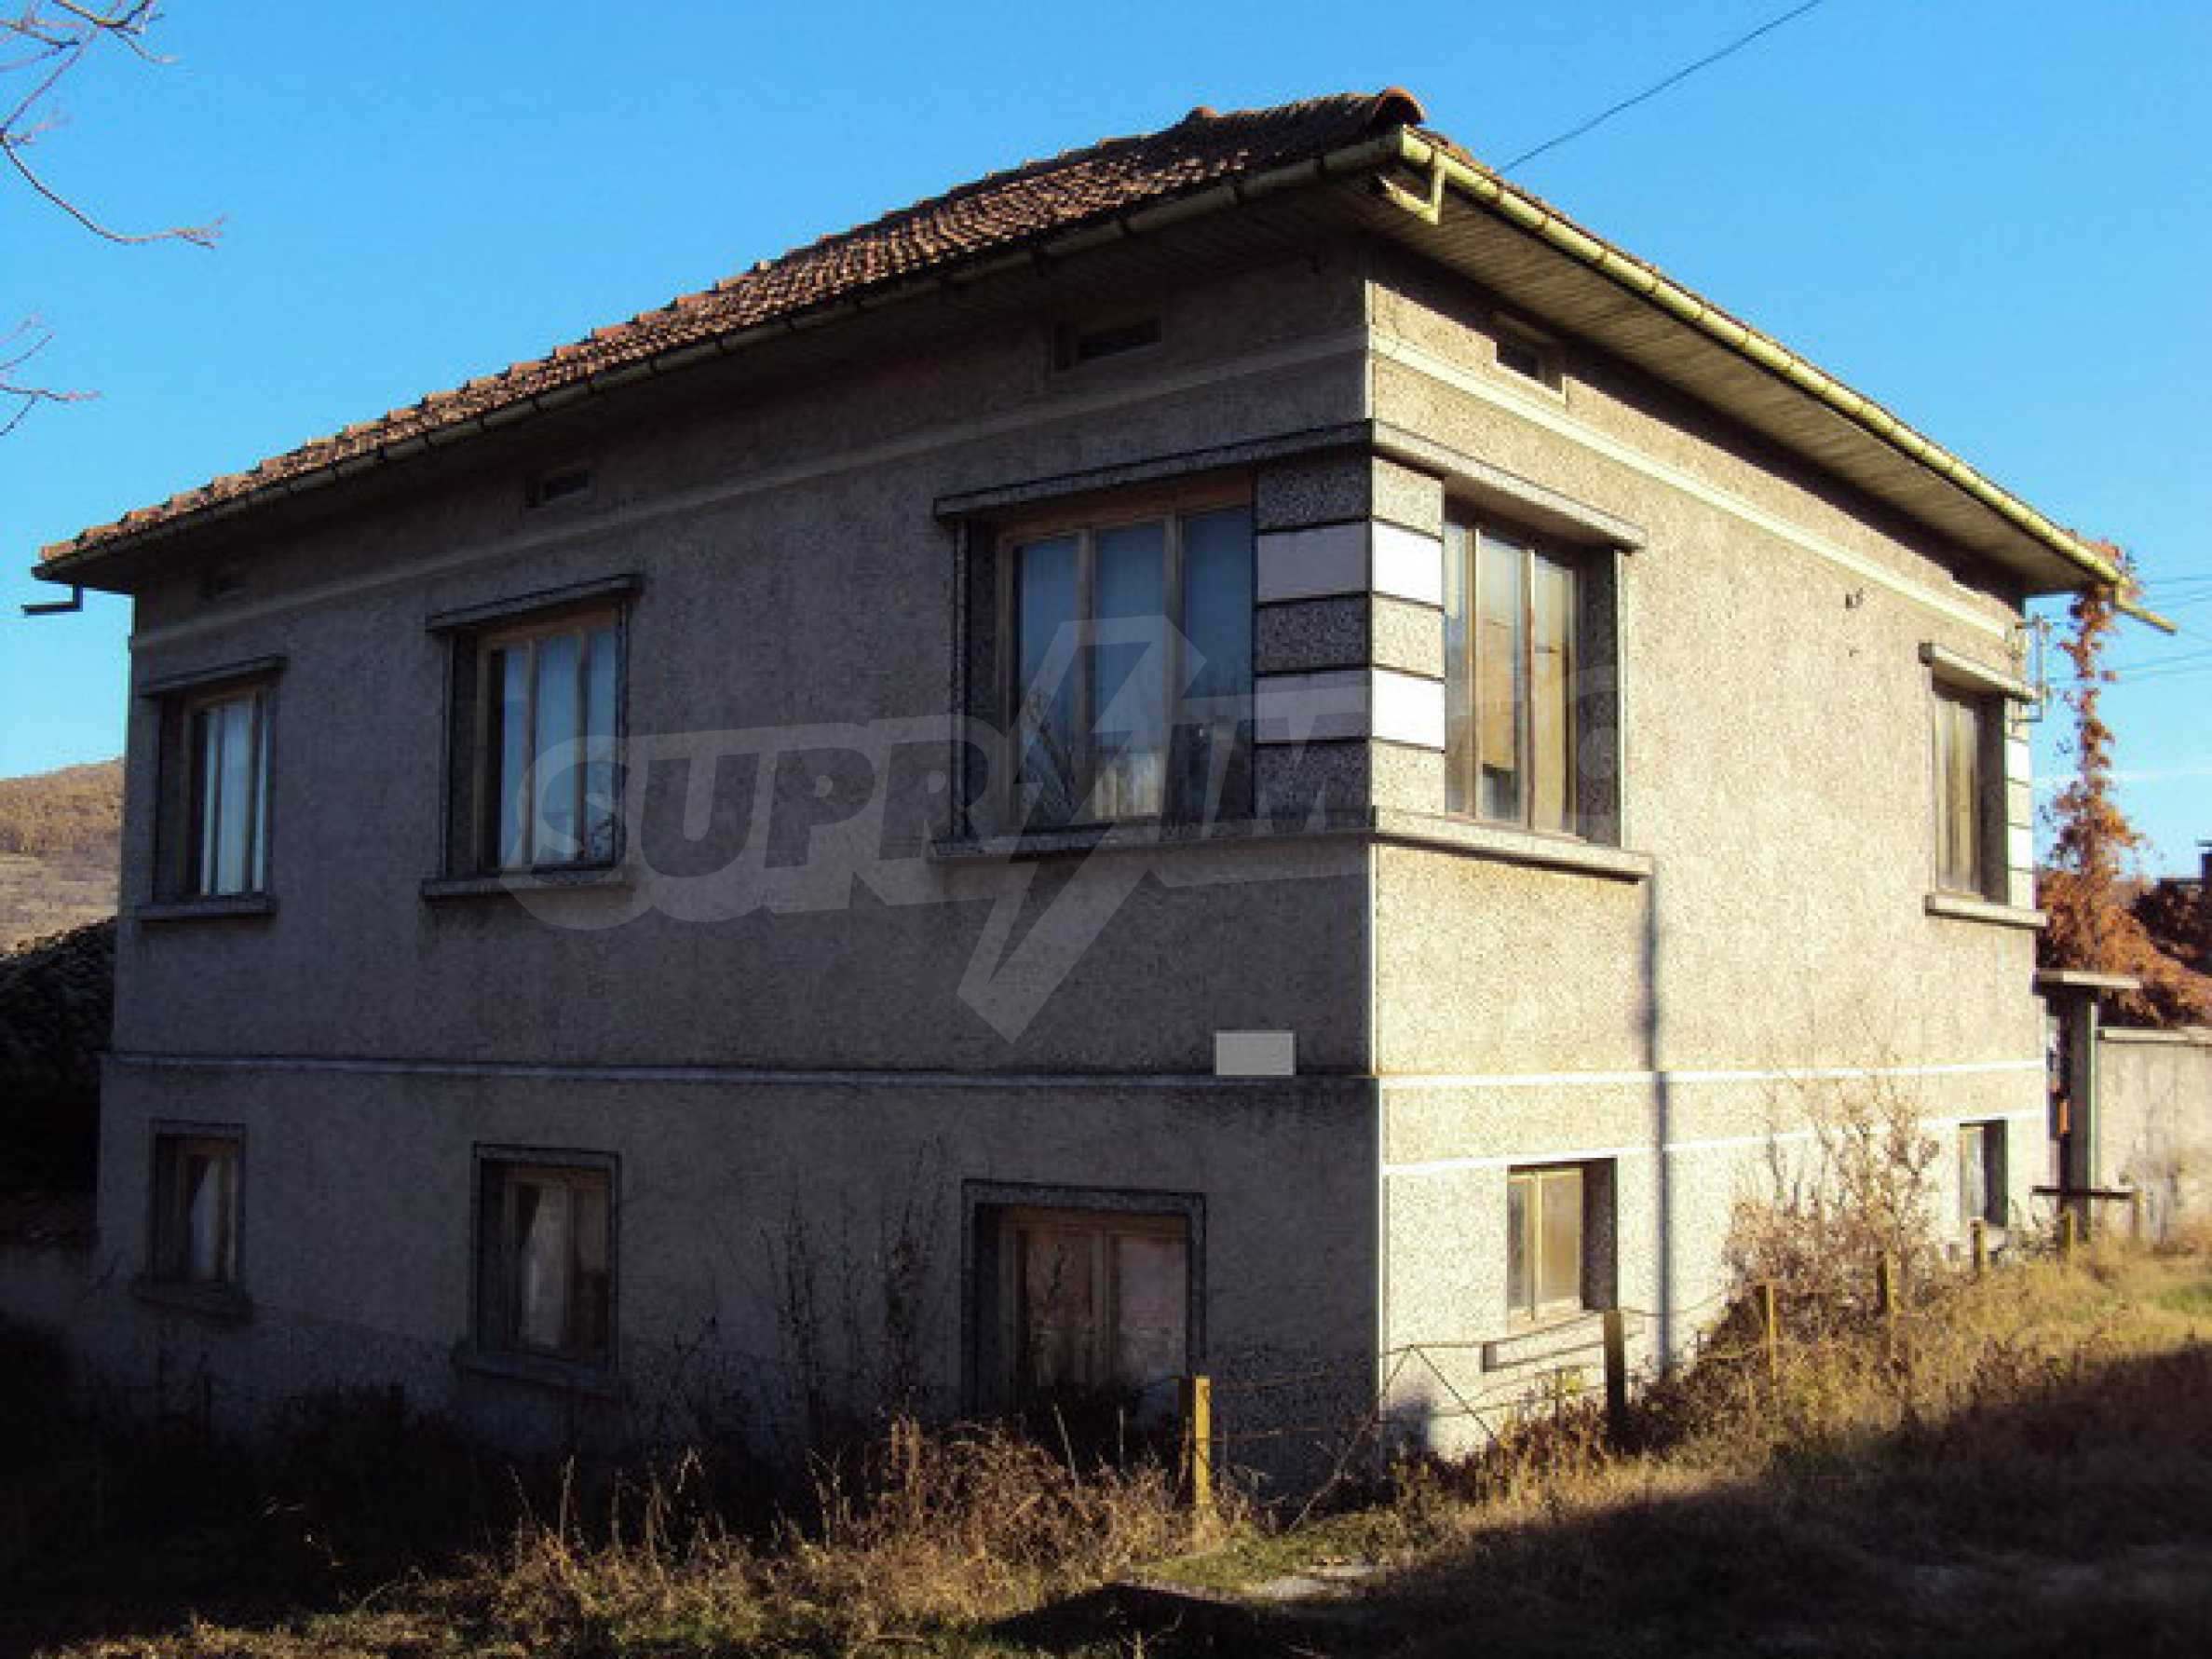 Spacious house in excellent condition in a village 25 km. the old capital of Veliko Tarnovo